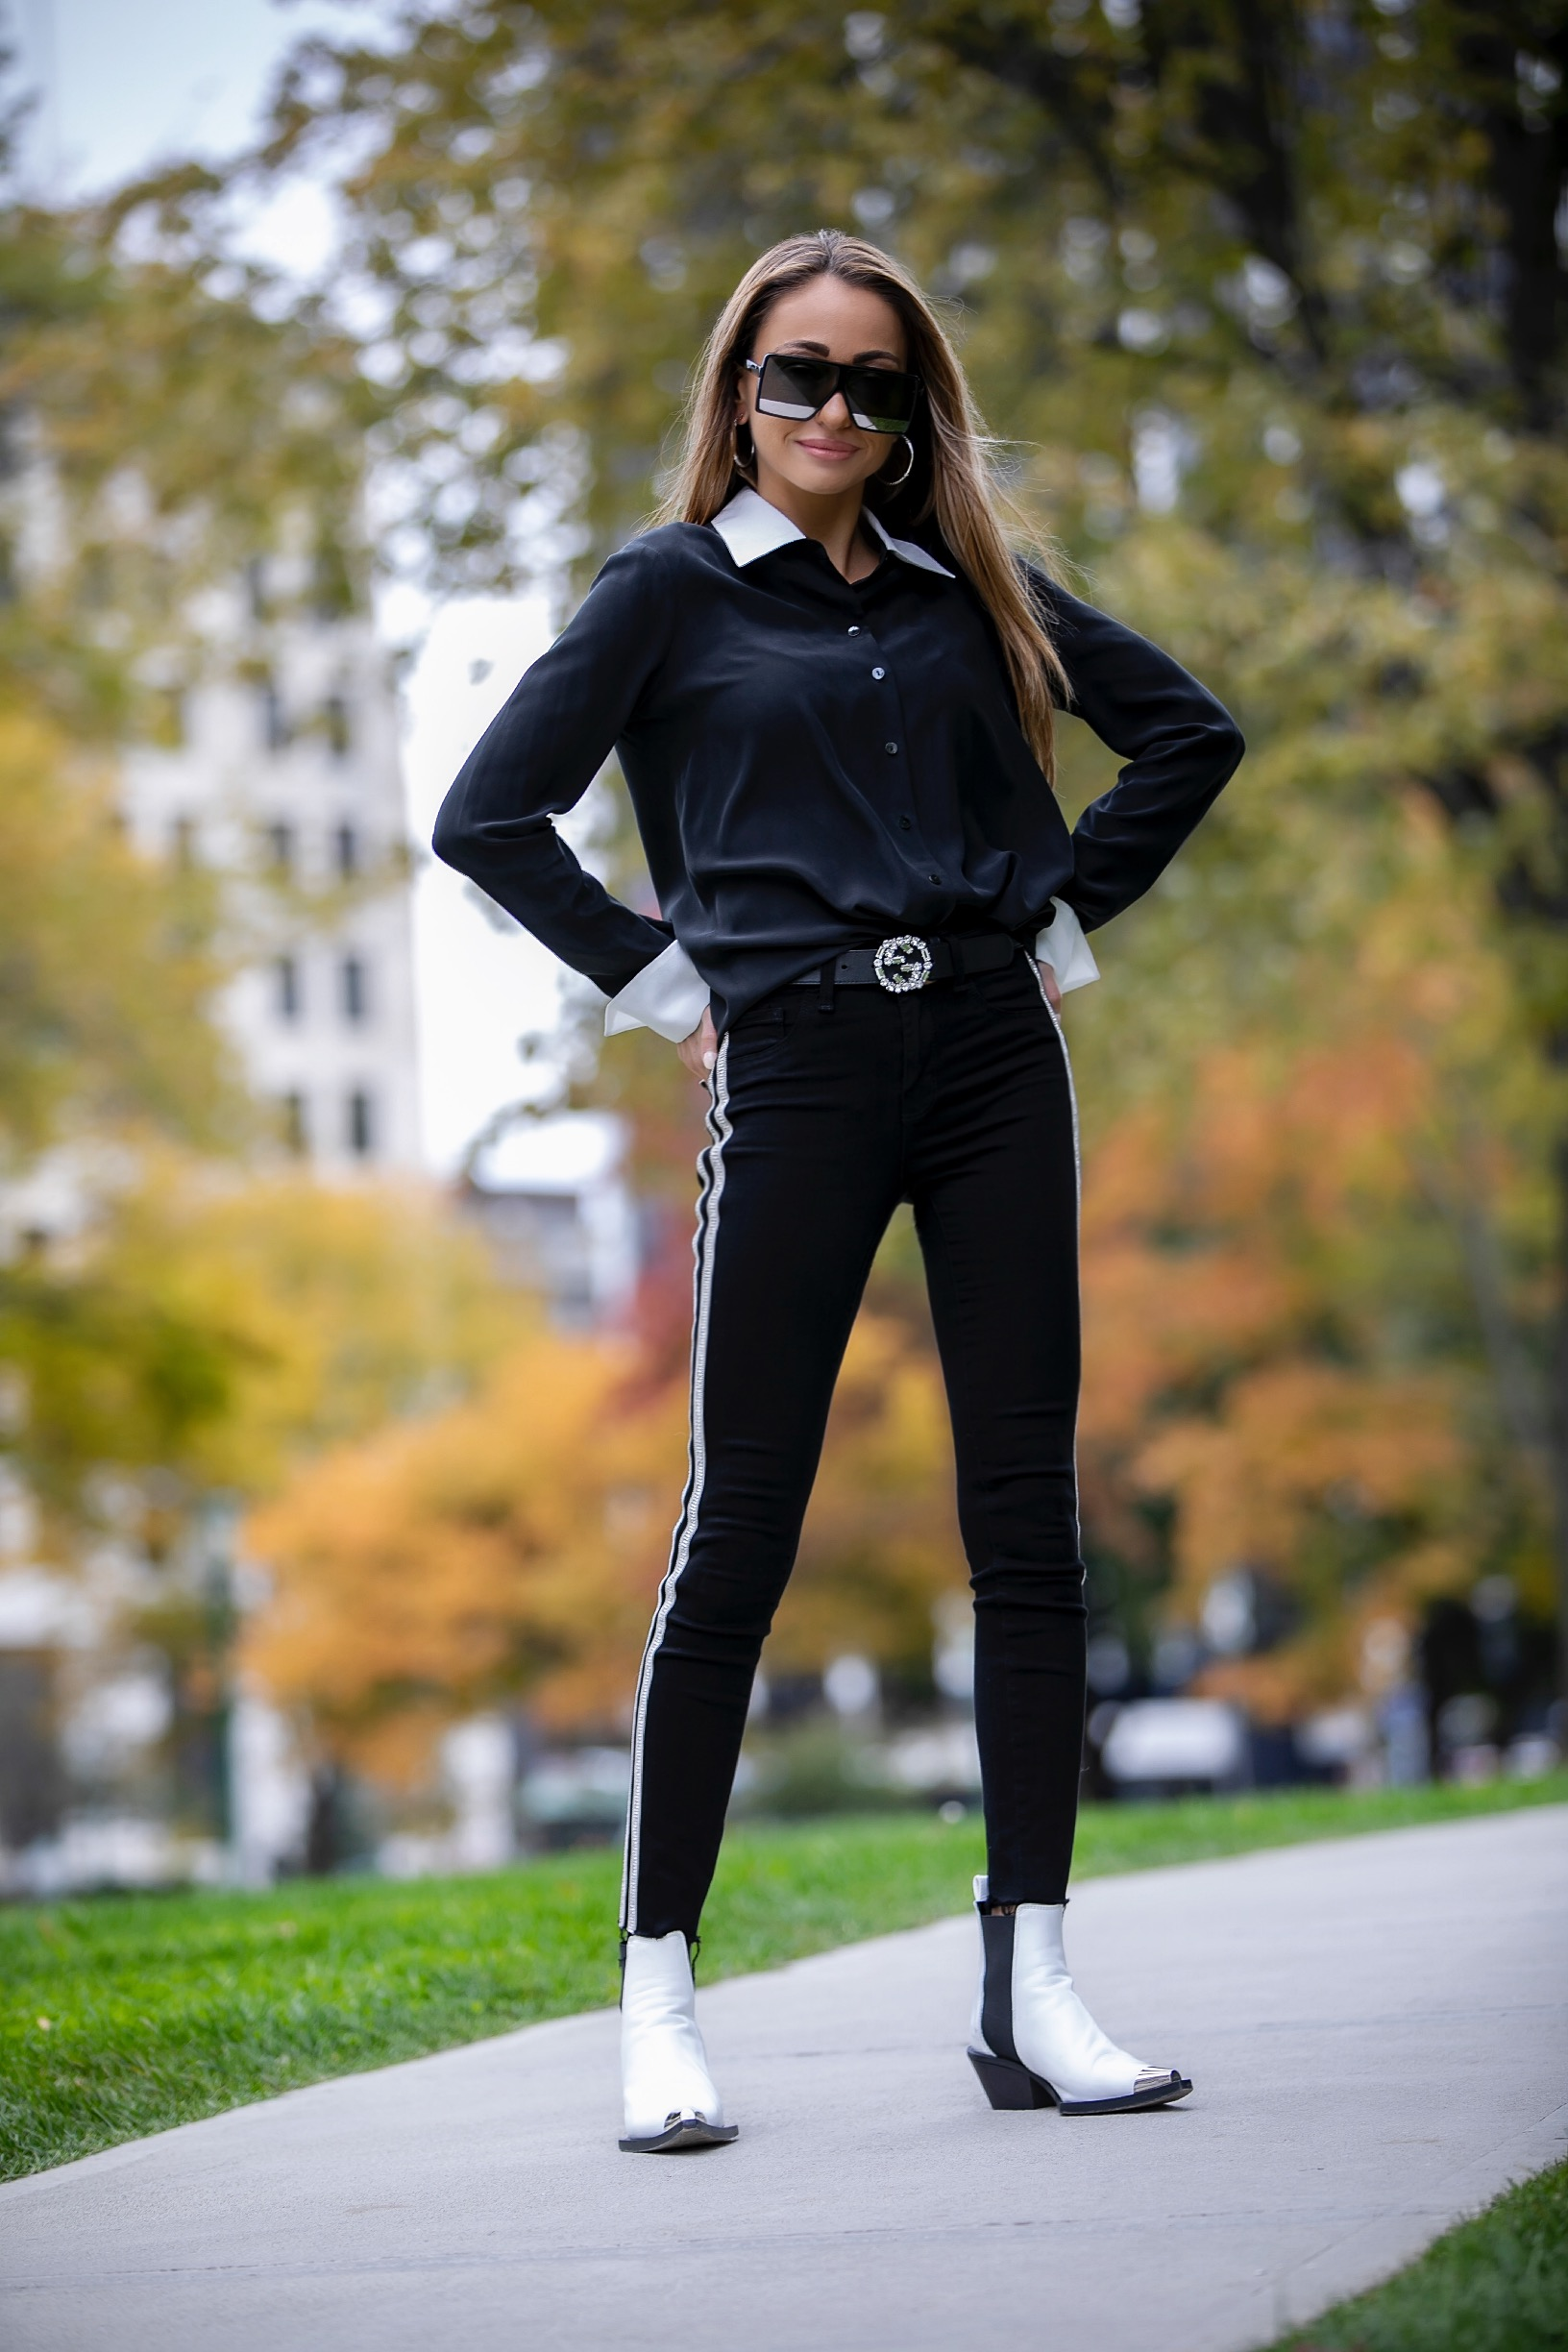 NYC streetstyle in a full L'Agence look